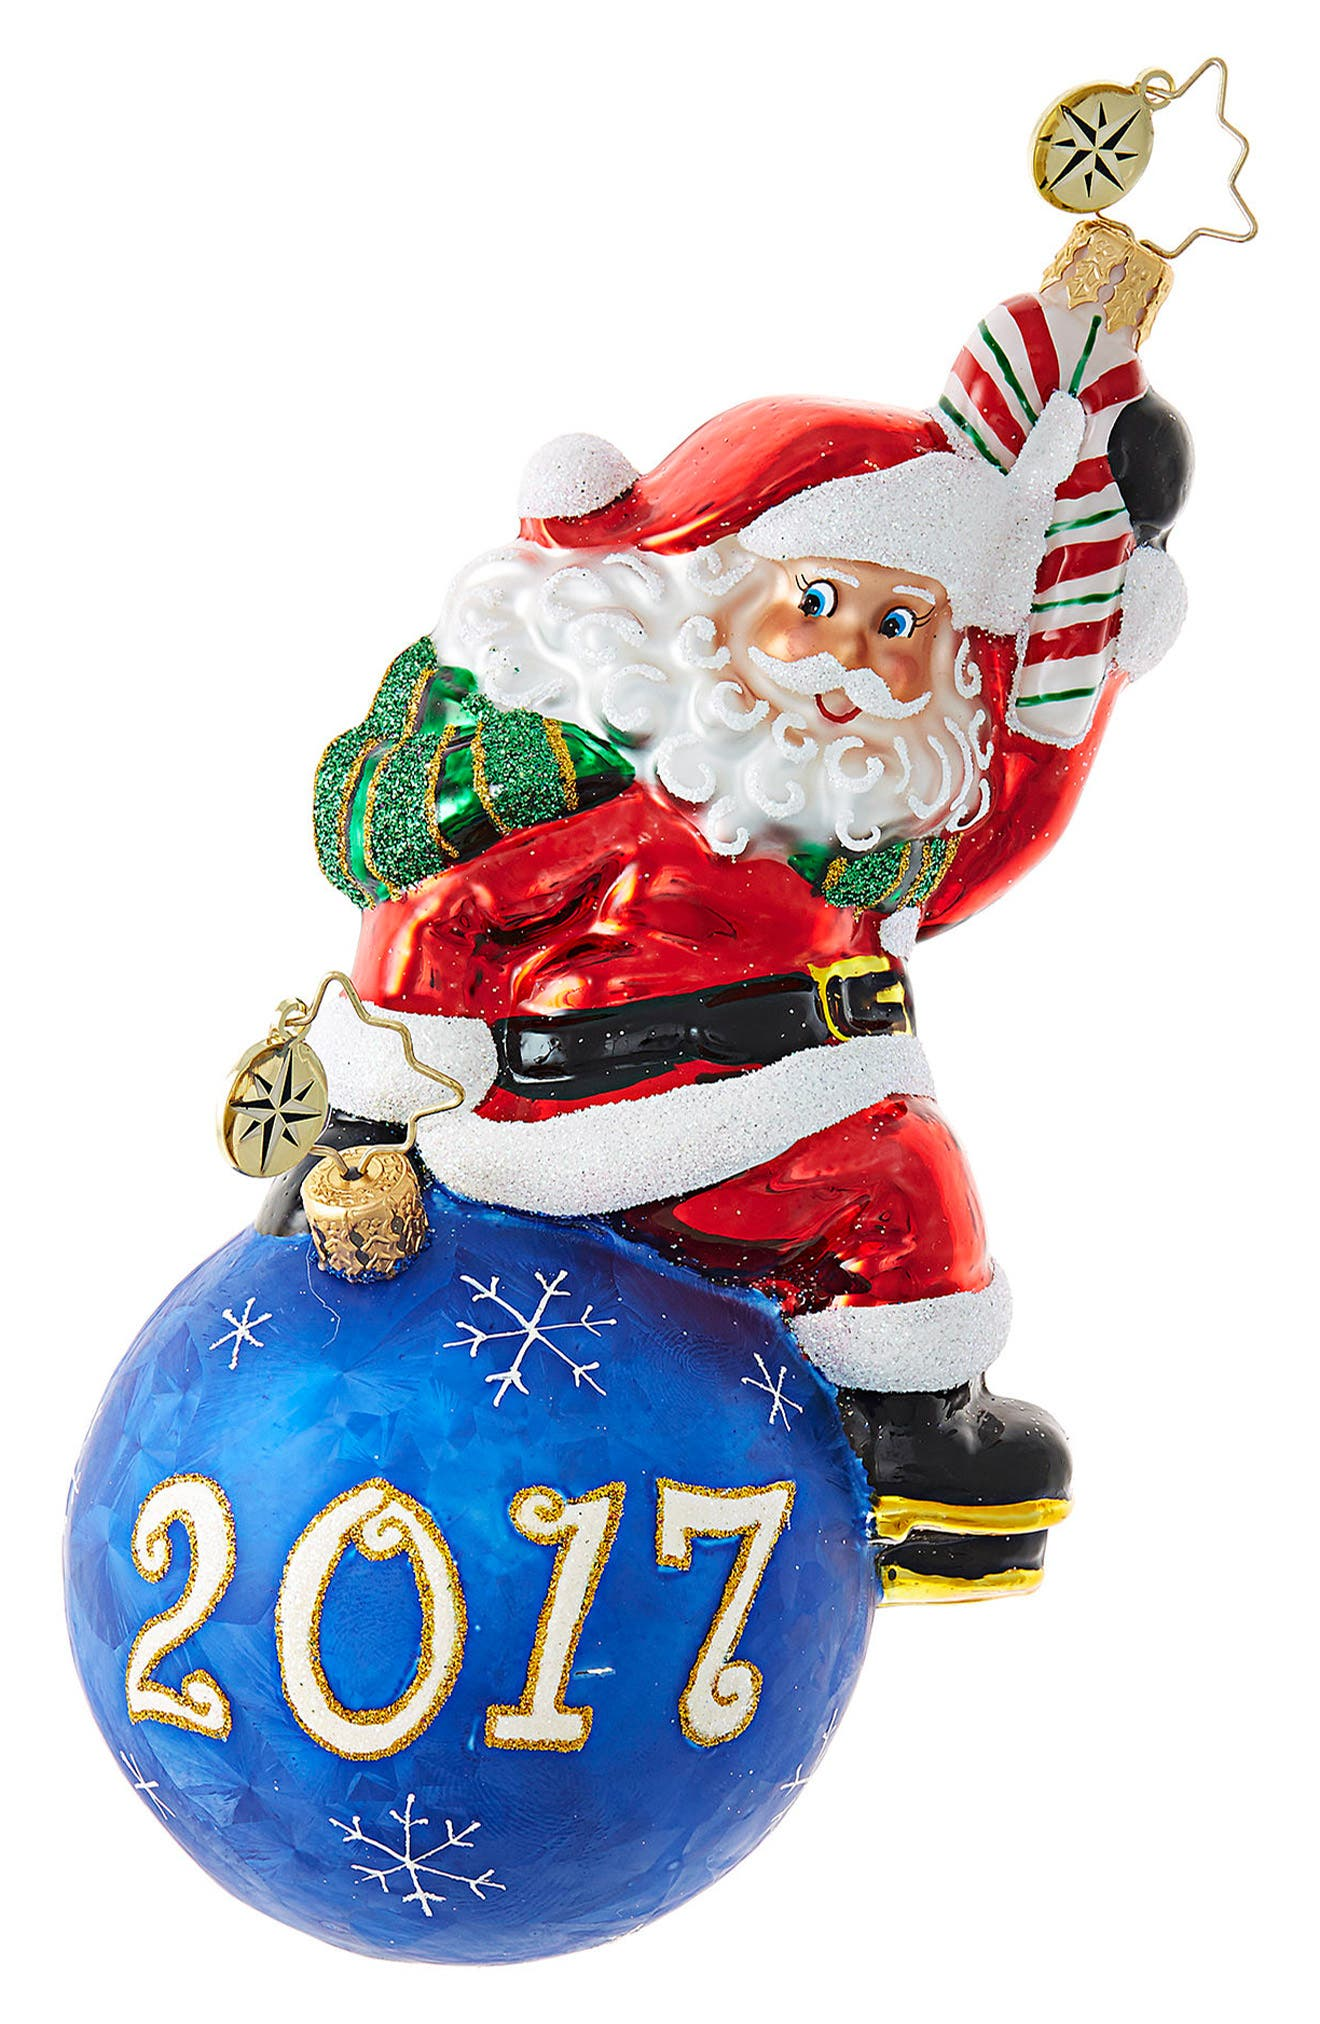 Alternate Image 1 Selected - Christopher Radko Having a Ball 2017 Santa Claus Ornament